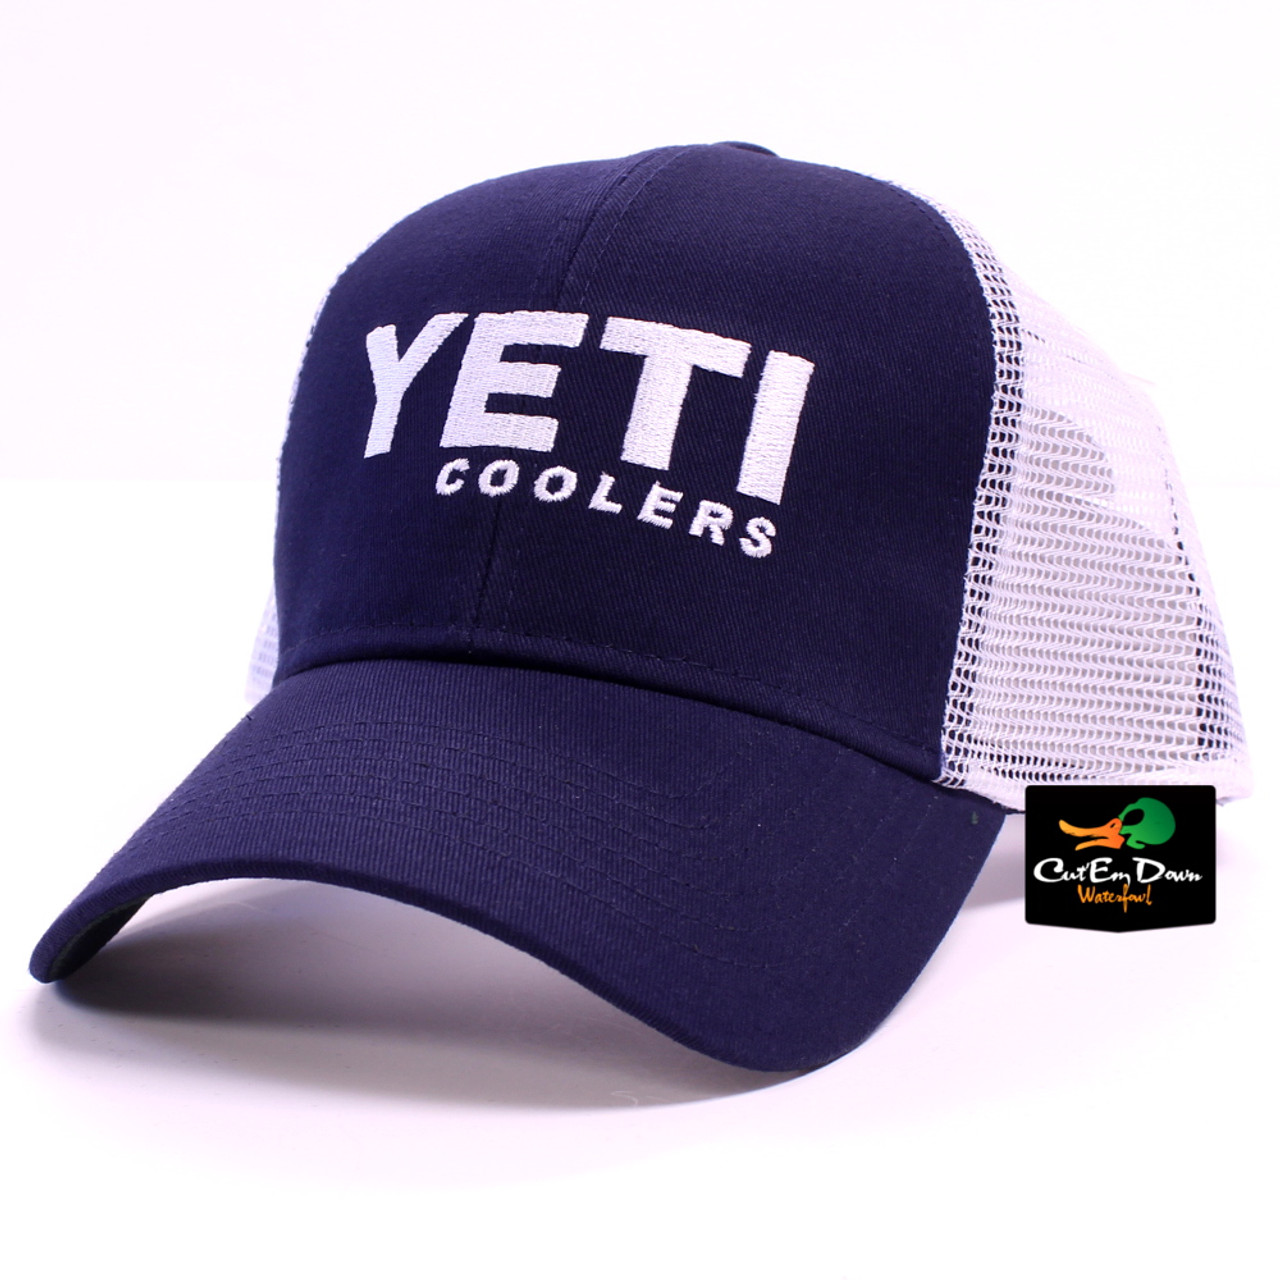 42f3bdc630ff5 Yeti Coolers Traditional Trucker Hat